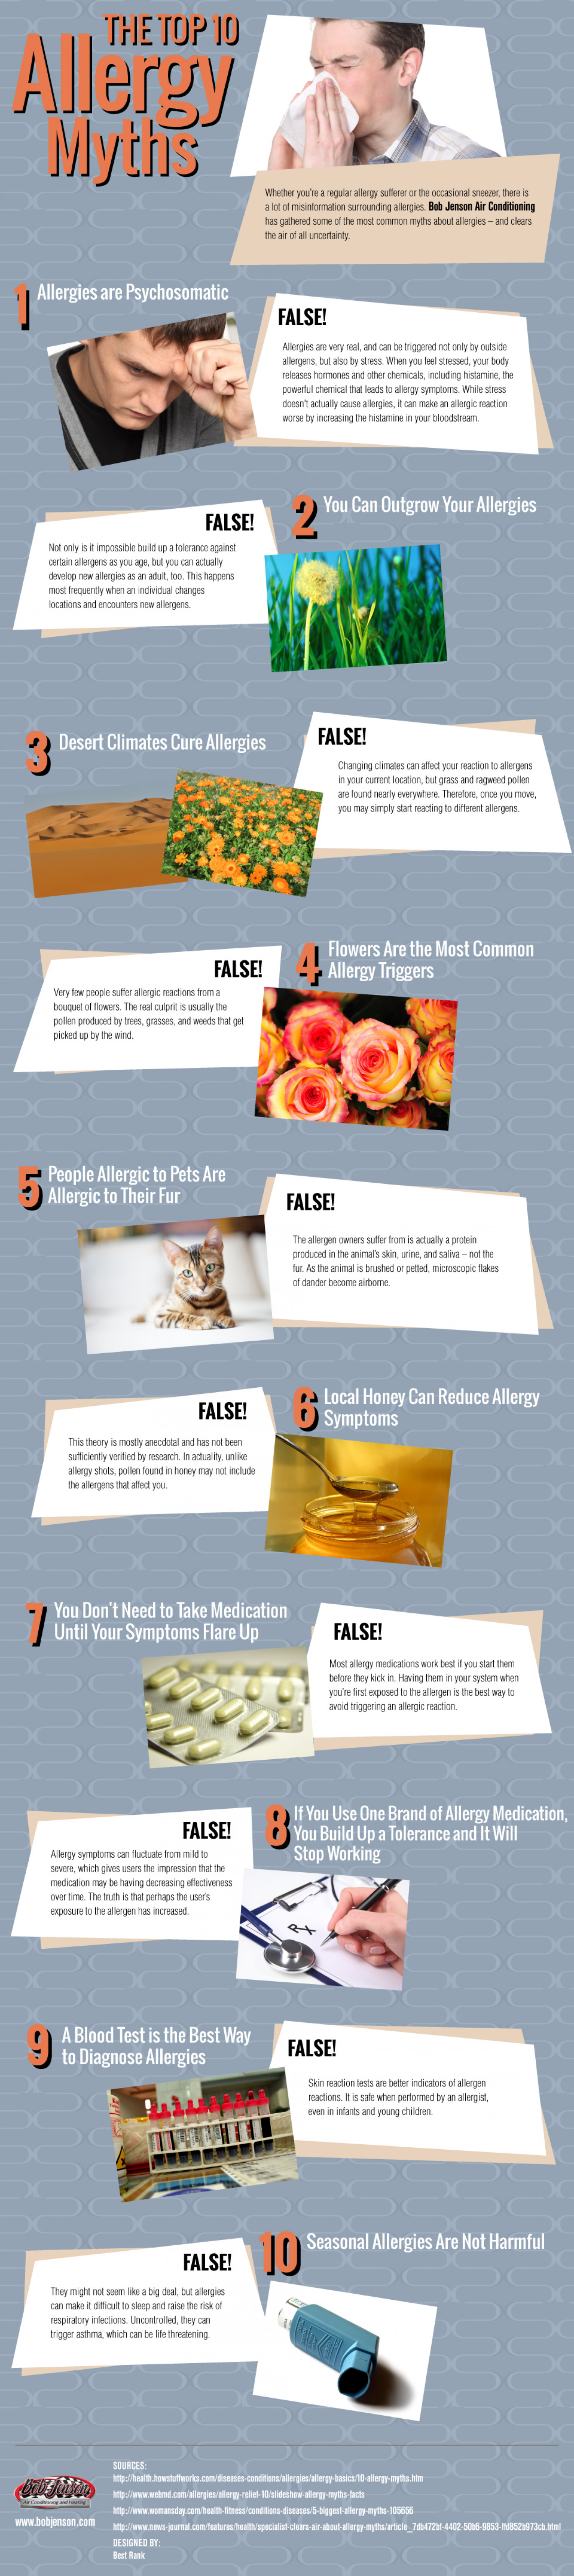 Top 10 Allergy Myths Busted! Infographic